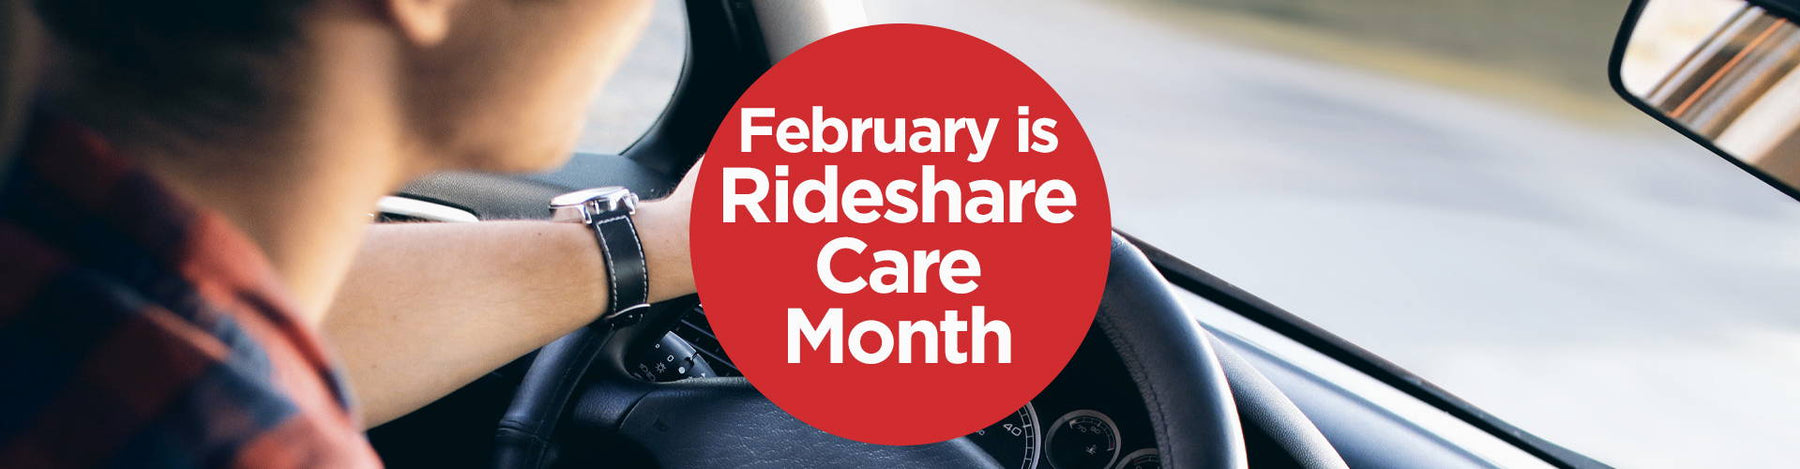 February is Rideshare Care Month